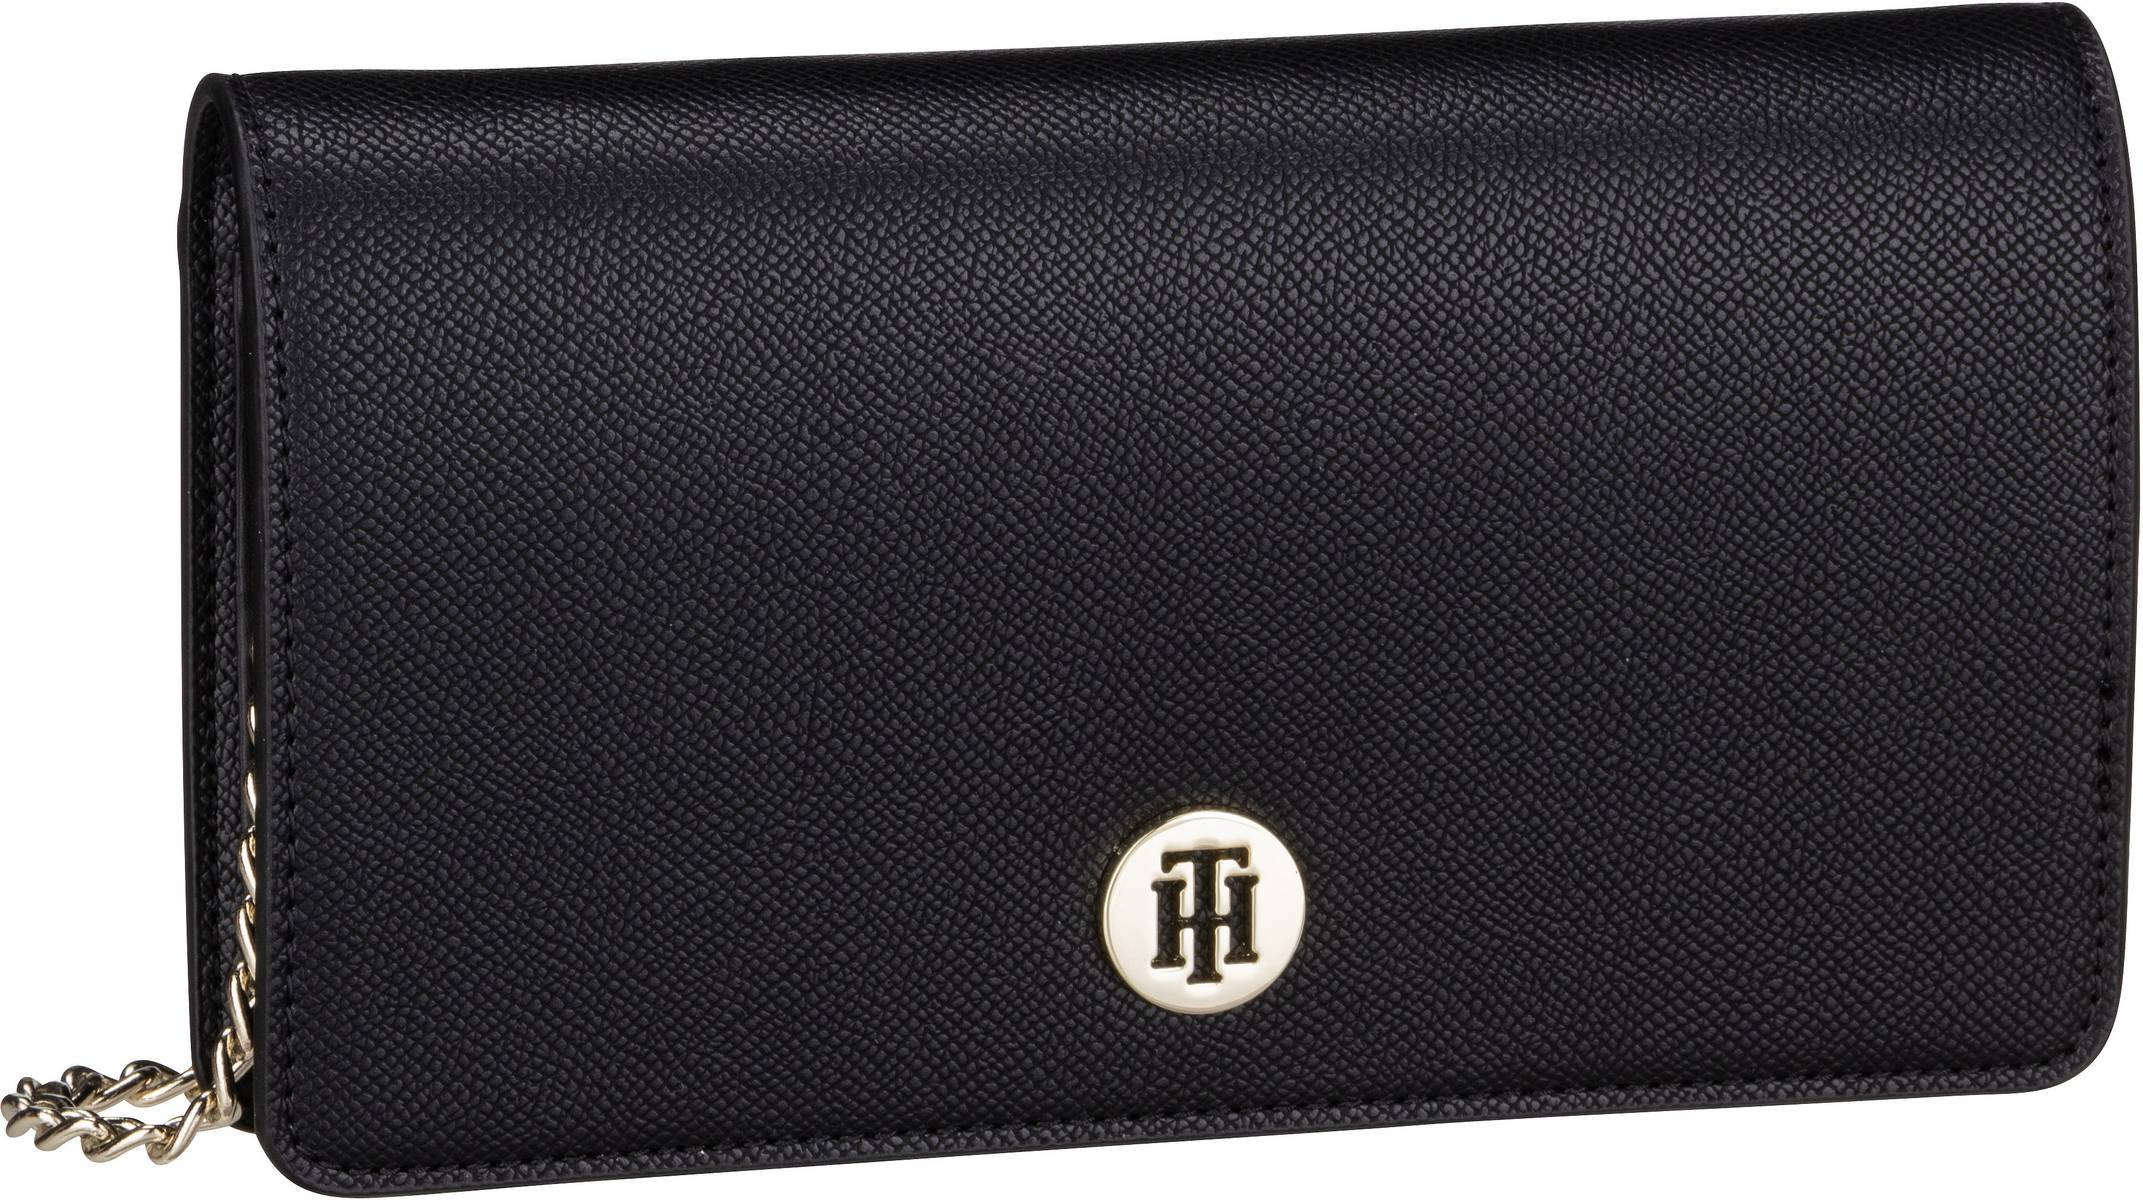 Clutches - Tommy Hilfiger Abendtasche Clutch Honey Mini Crossover SP20 Black  - Onlineshop Taschenkaufhaus